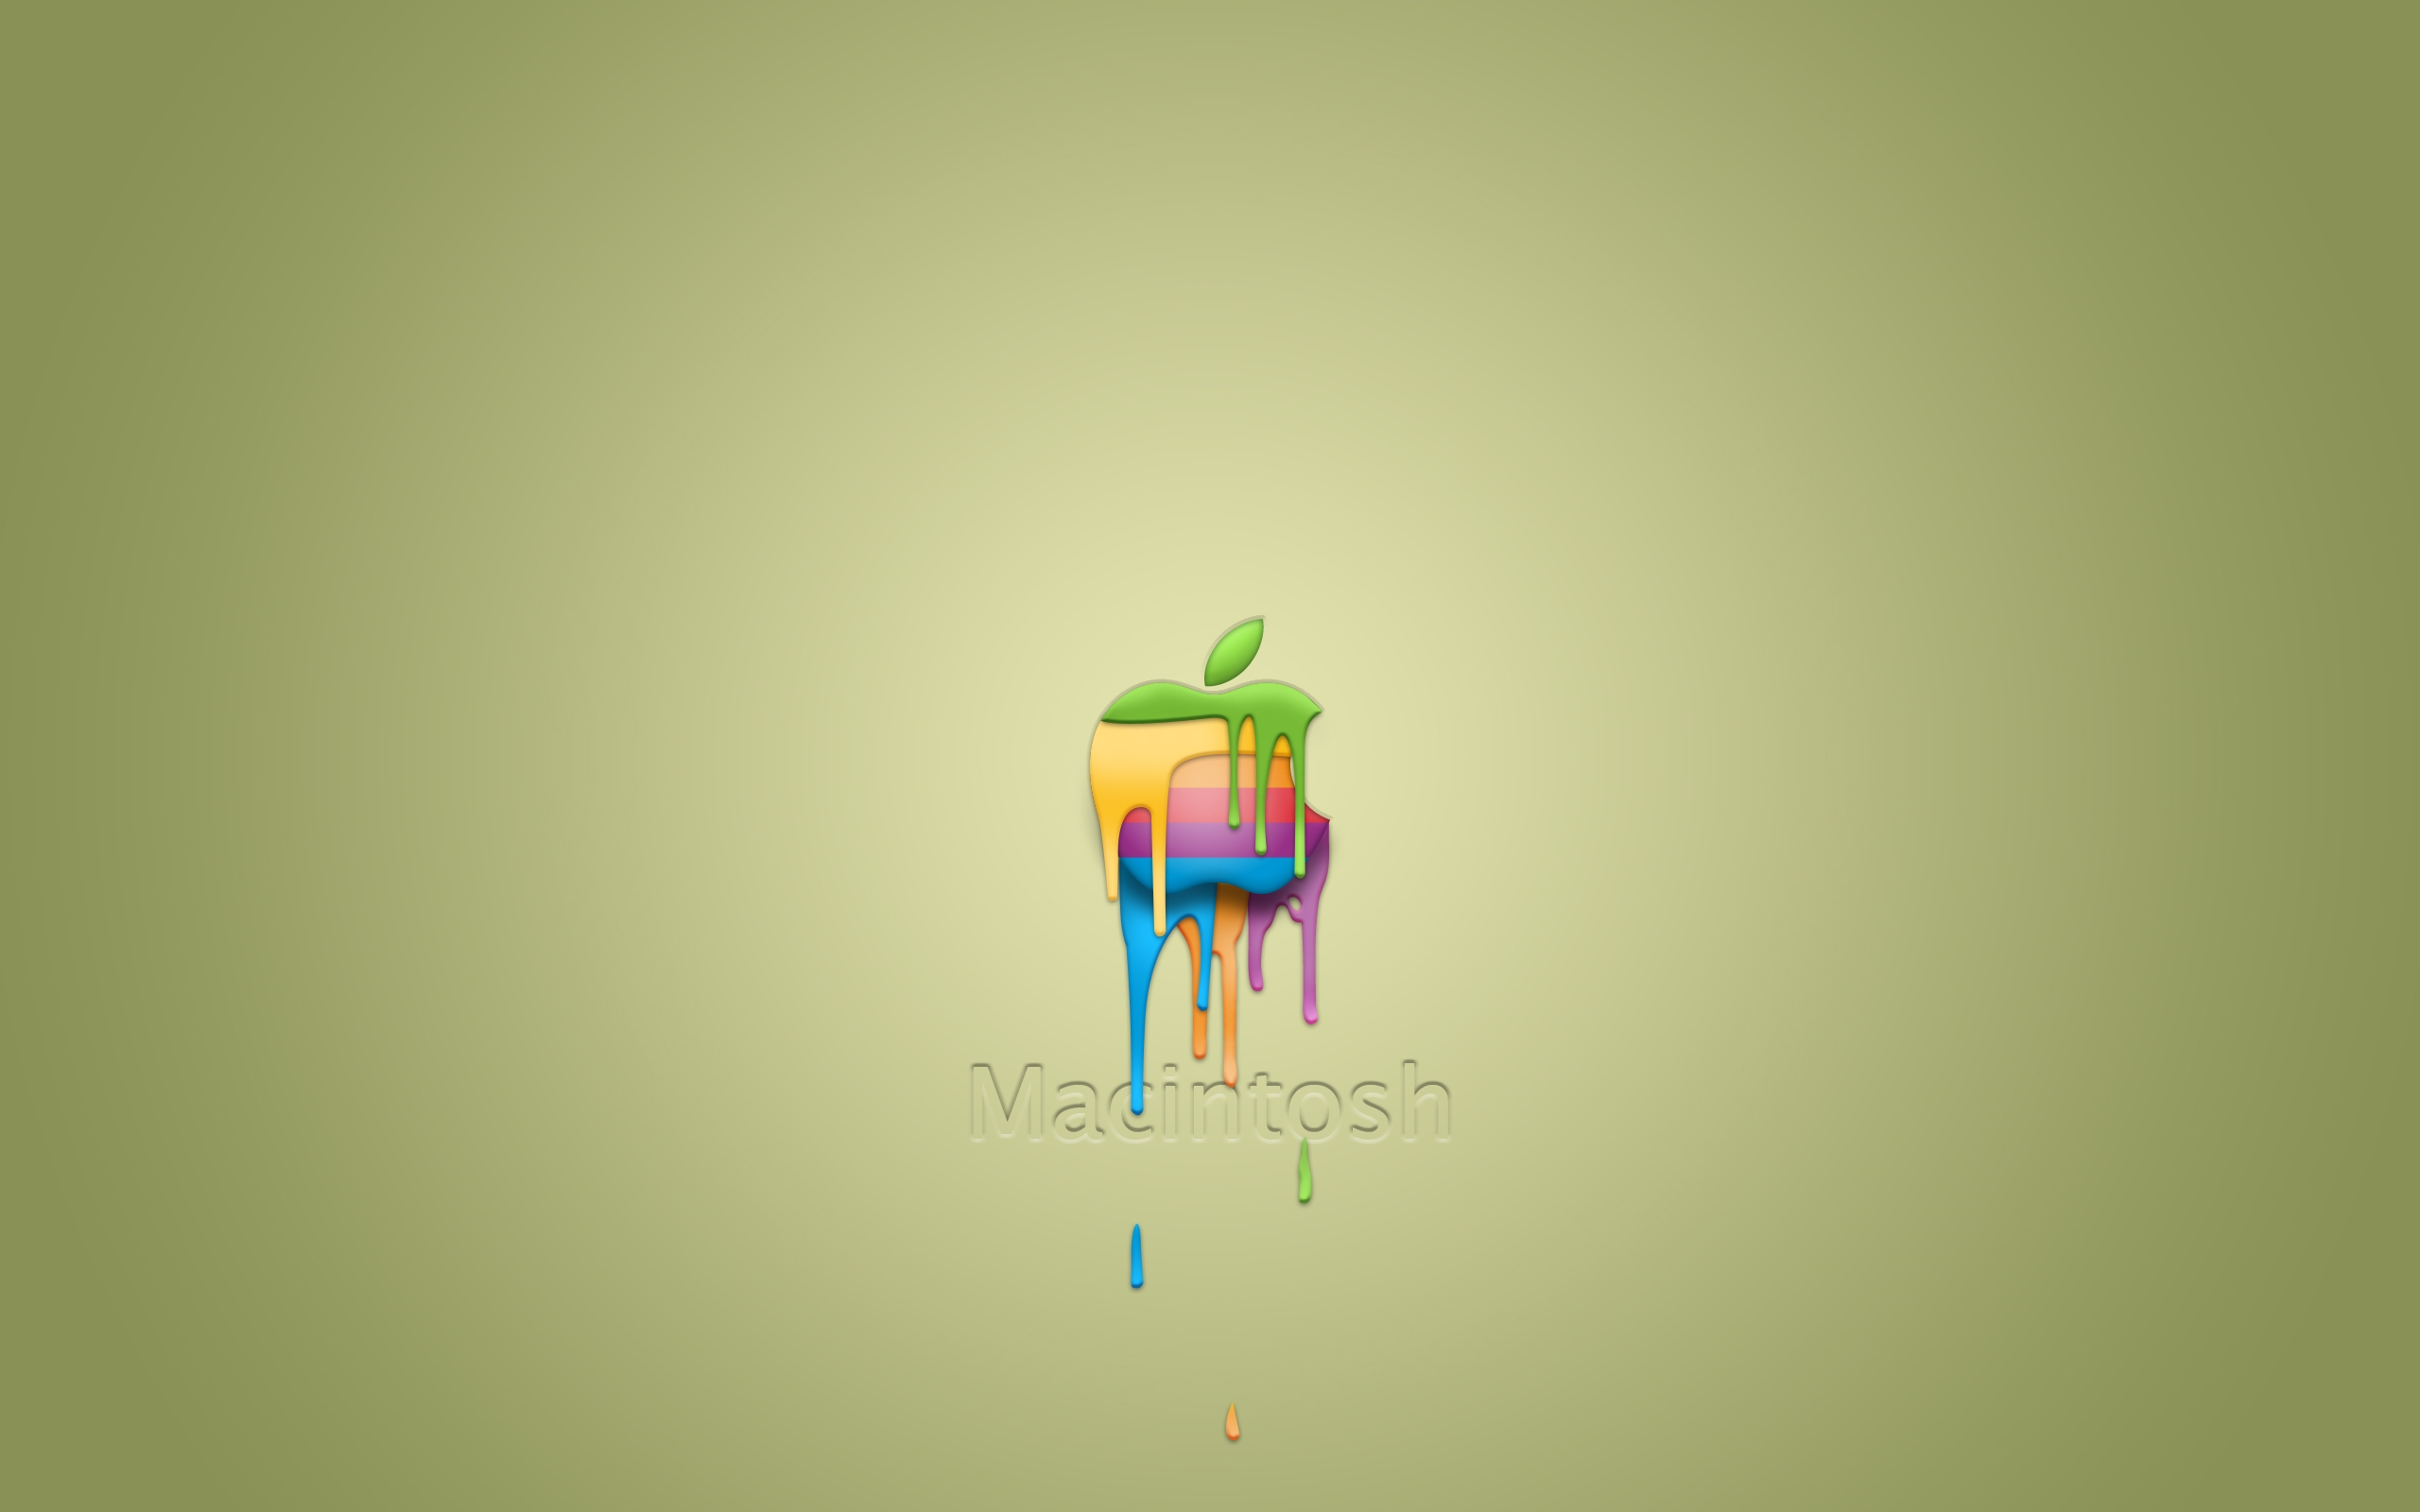 Macintosh Mac Wallpaper Download Mac Wallpapers Download 2560x1600